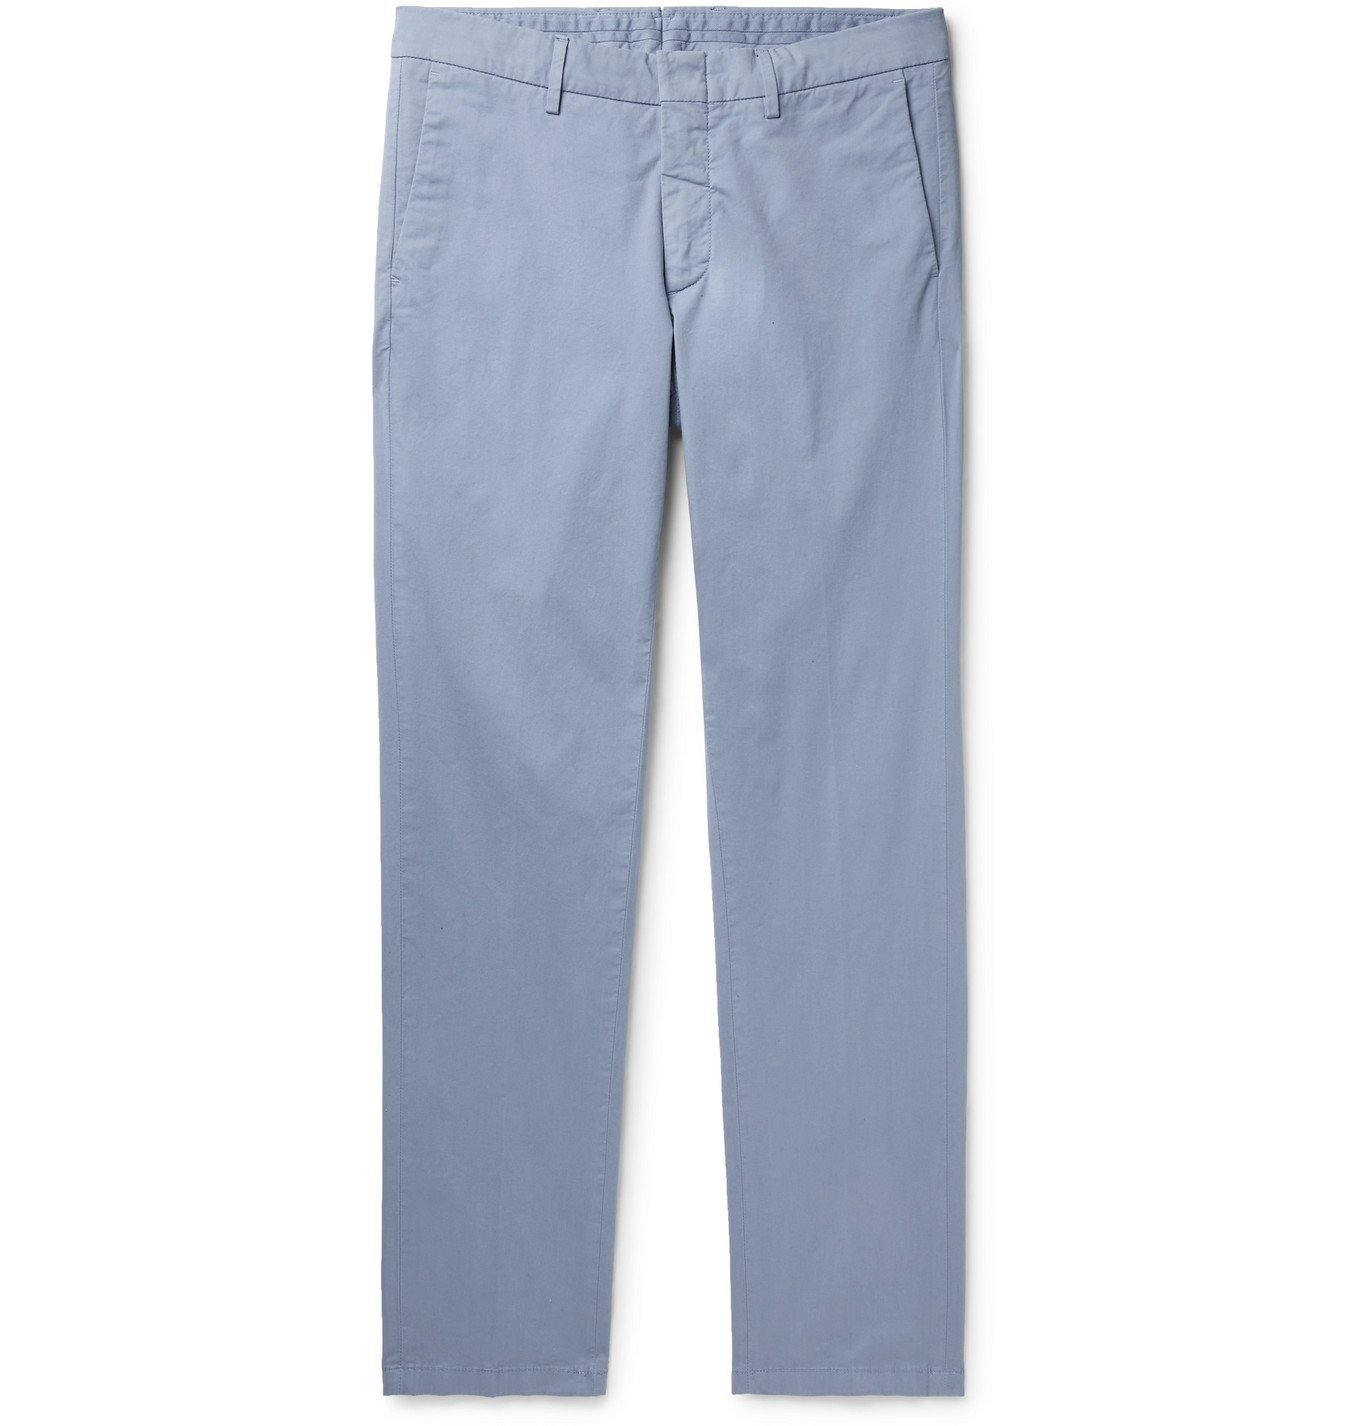 DUNHILL - Cotton-Blend Twill Chinos - Blue